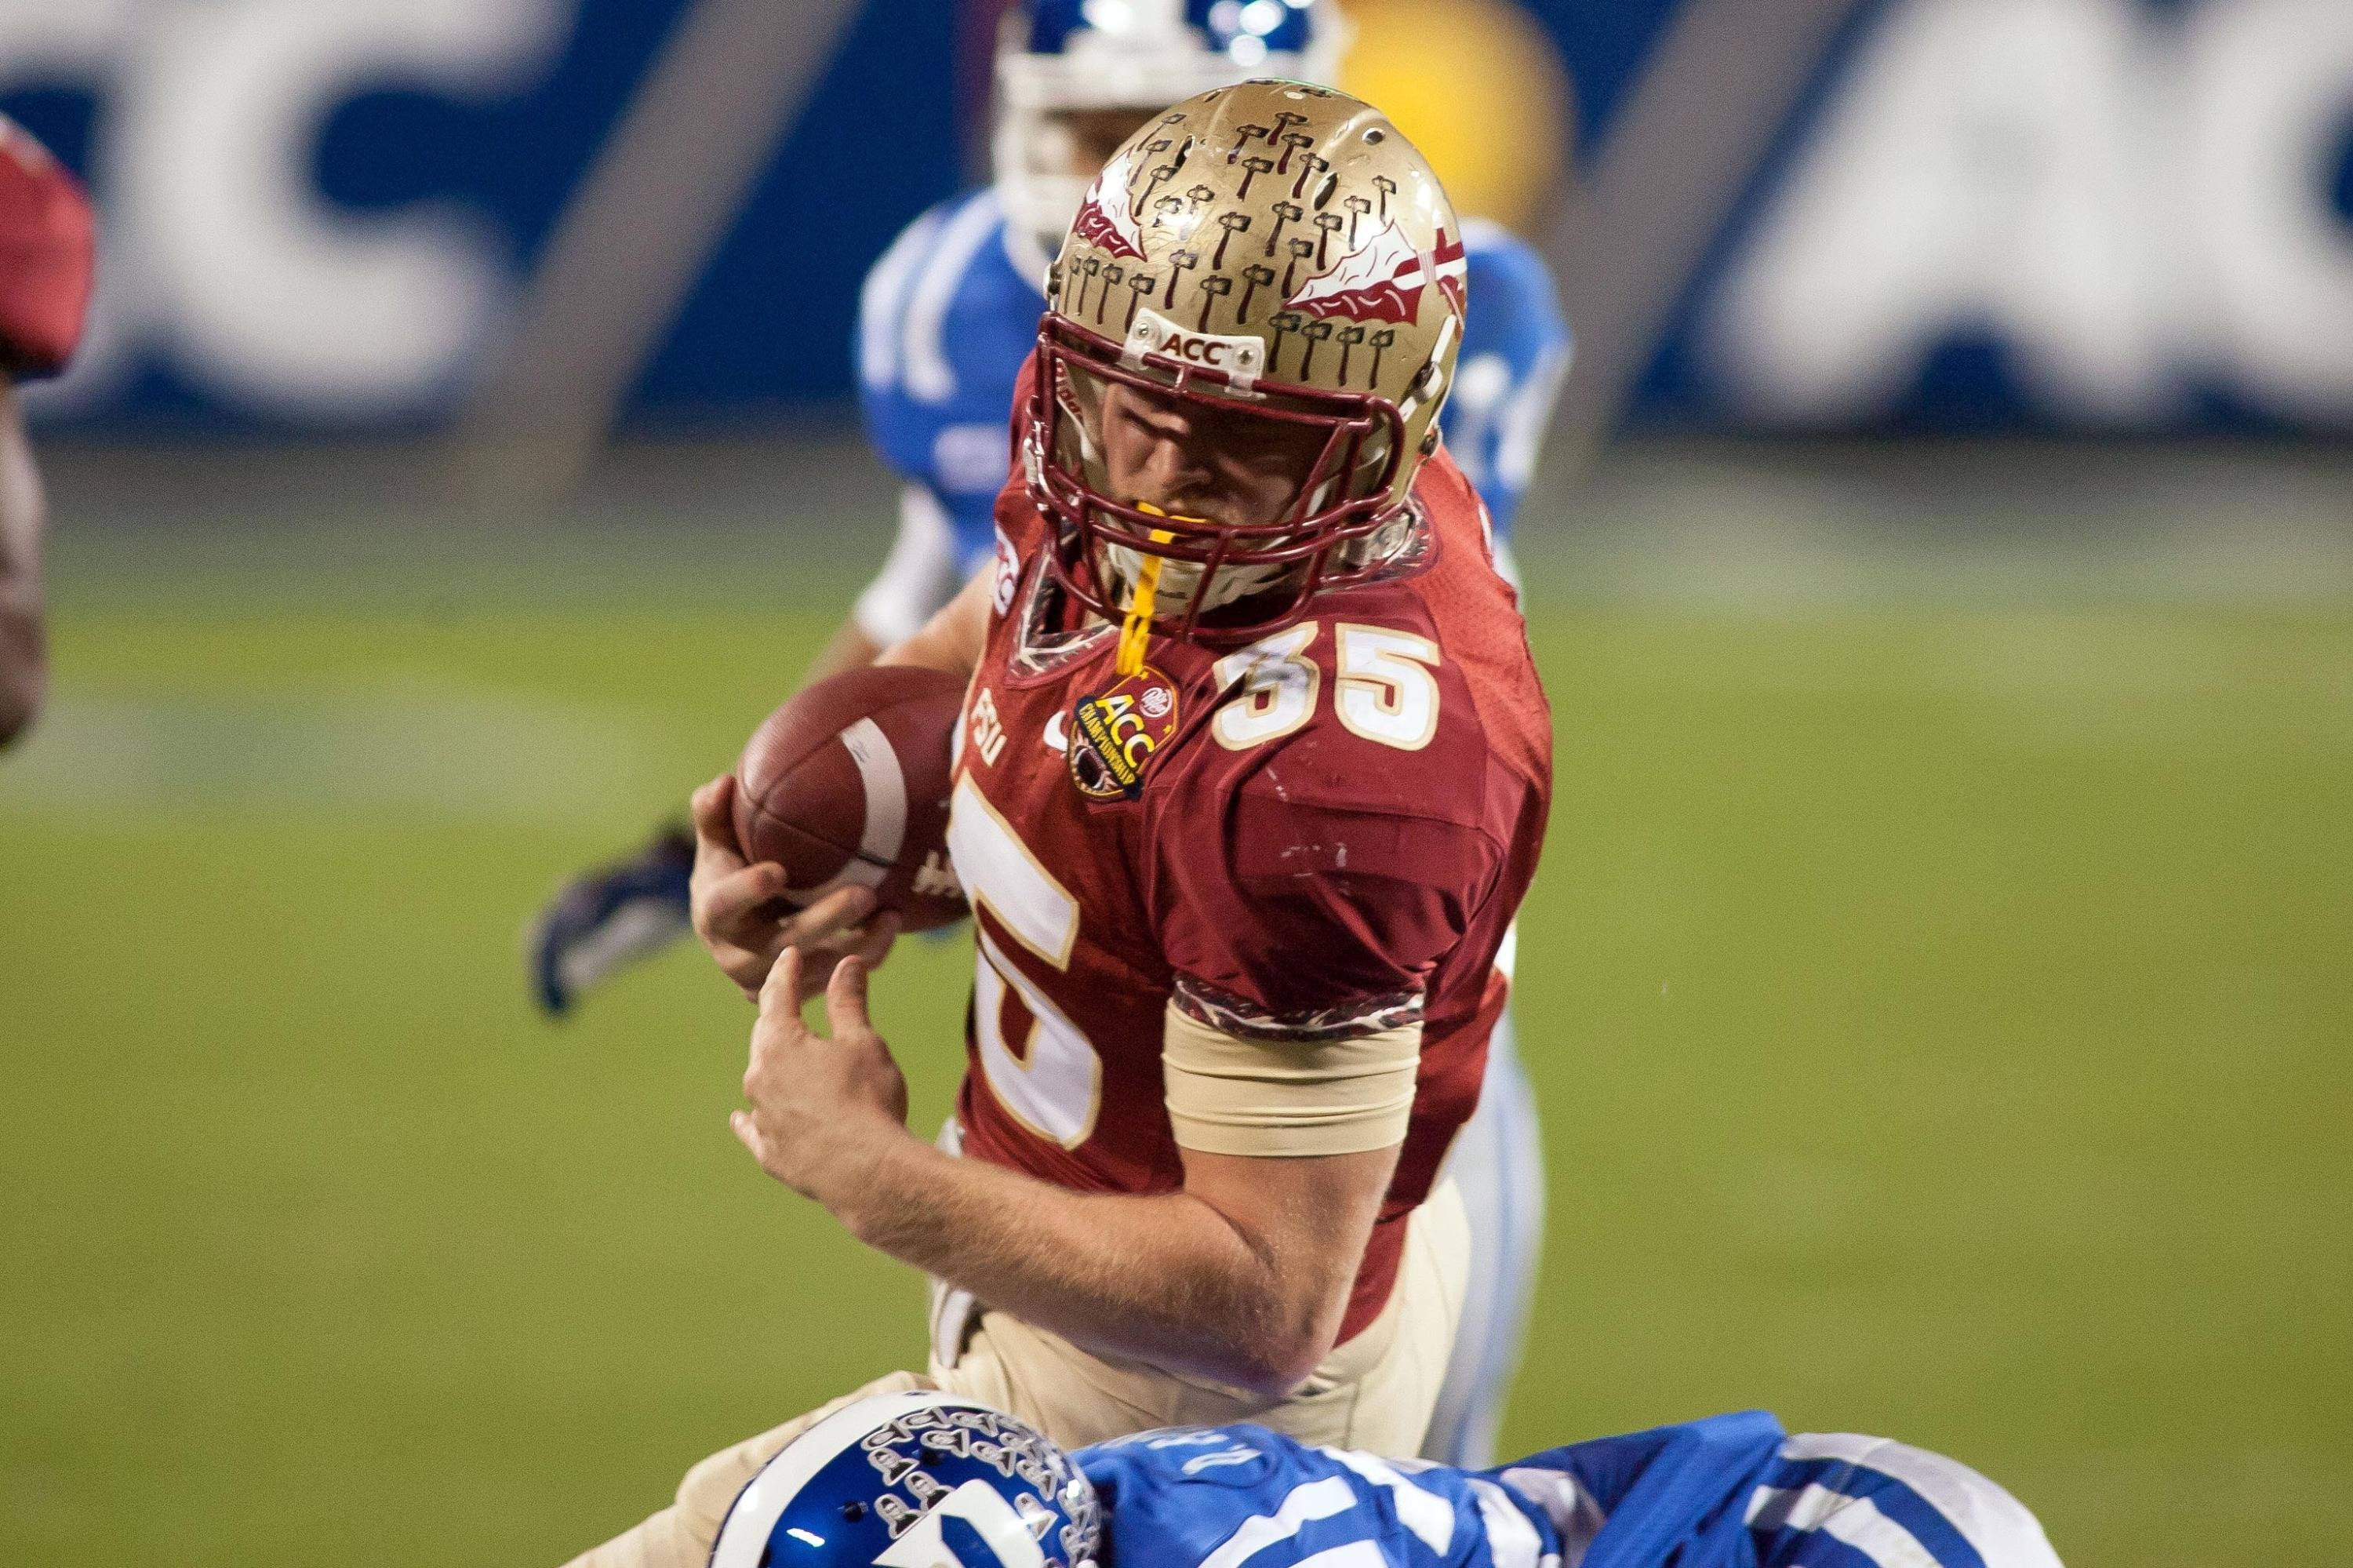 Dec 7, 2013; Charlotte, NC, USA; Florida State Seminoles tight end Nick O'Leary (35) runs after catching a pass during the third quarter against the Duke Blue Devils at Bank of America Stadium. FSU defeated Duke 45-7. Mandatory Credit: Jeremy Brevard-USA TODAY Sports